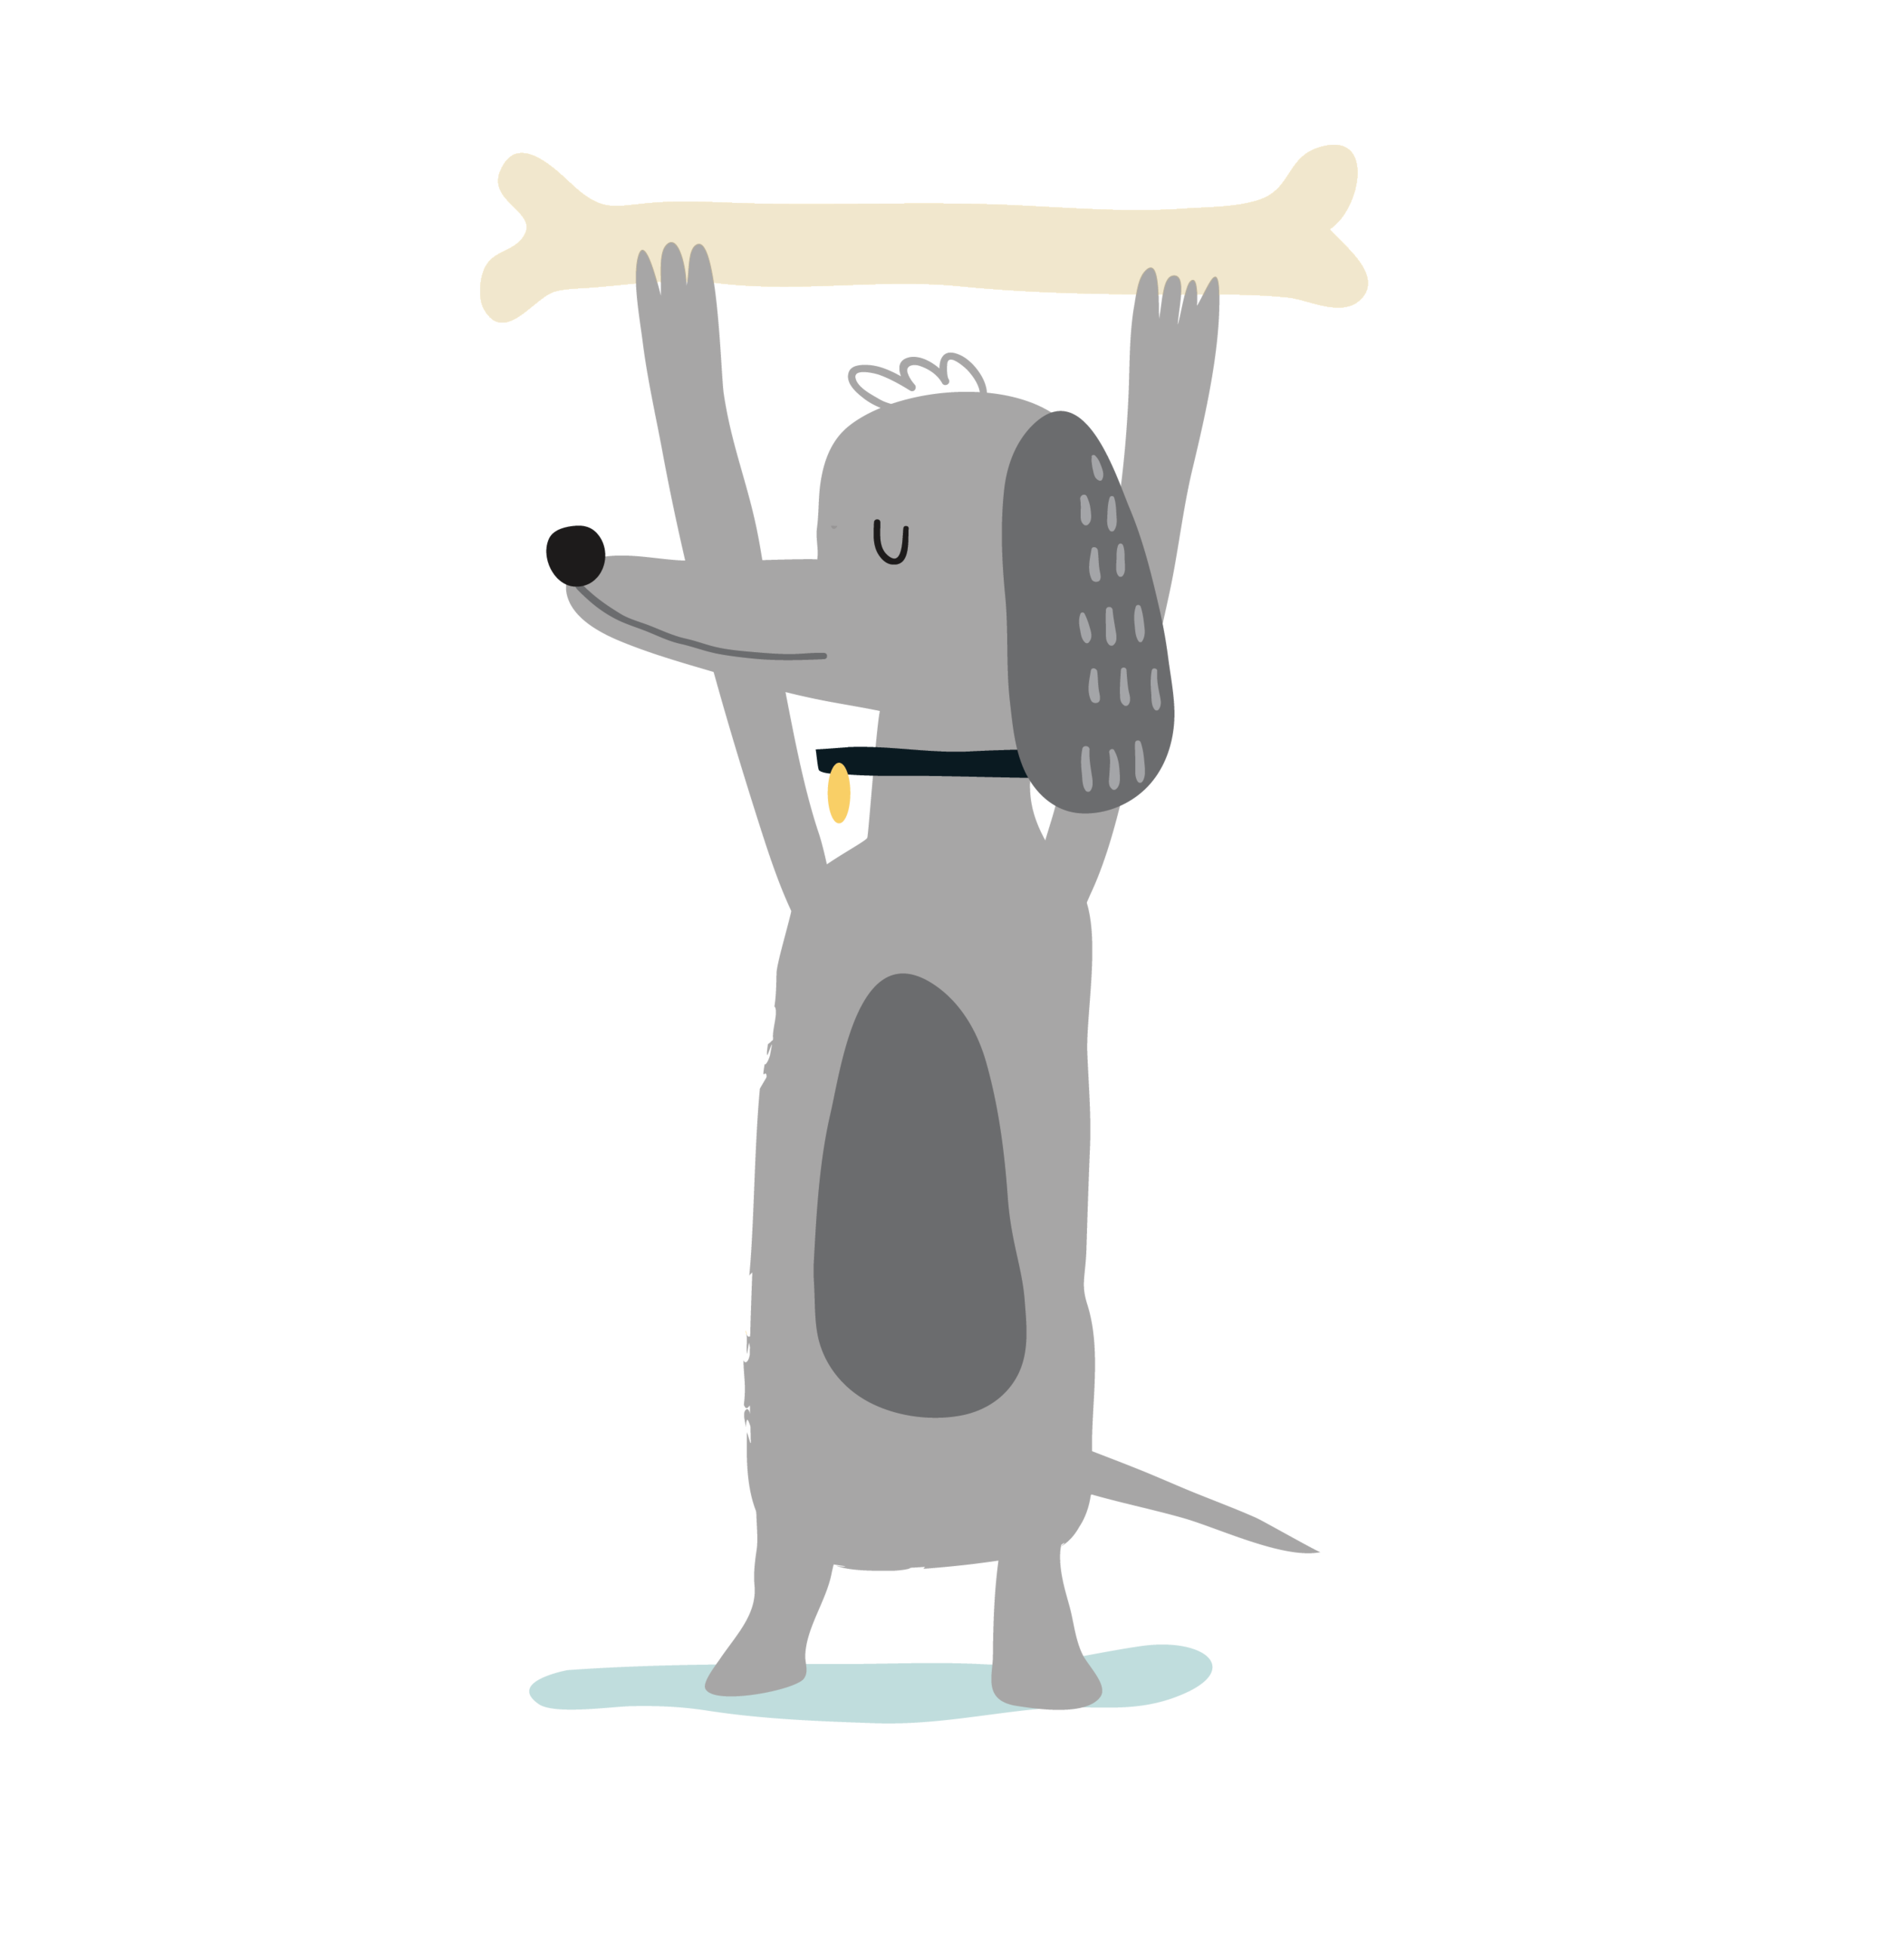 Dog boarding kennels and grooming services, located in Devon Meadows, South East Melbourne.  Servicing areas including Sandhurst, Narre Warren, Frankston, Mornington, Seaford, Carrum, Bon-Beach, Patterson Lakes, Chelsea, Edithvale and Bayside suburbs including Sandringham, Hampton, Brighton, Elwood, St. Kilda